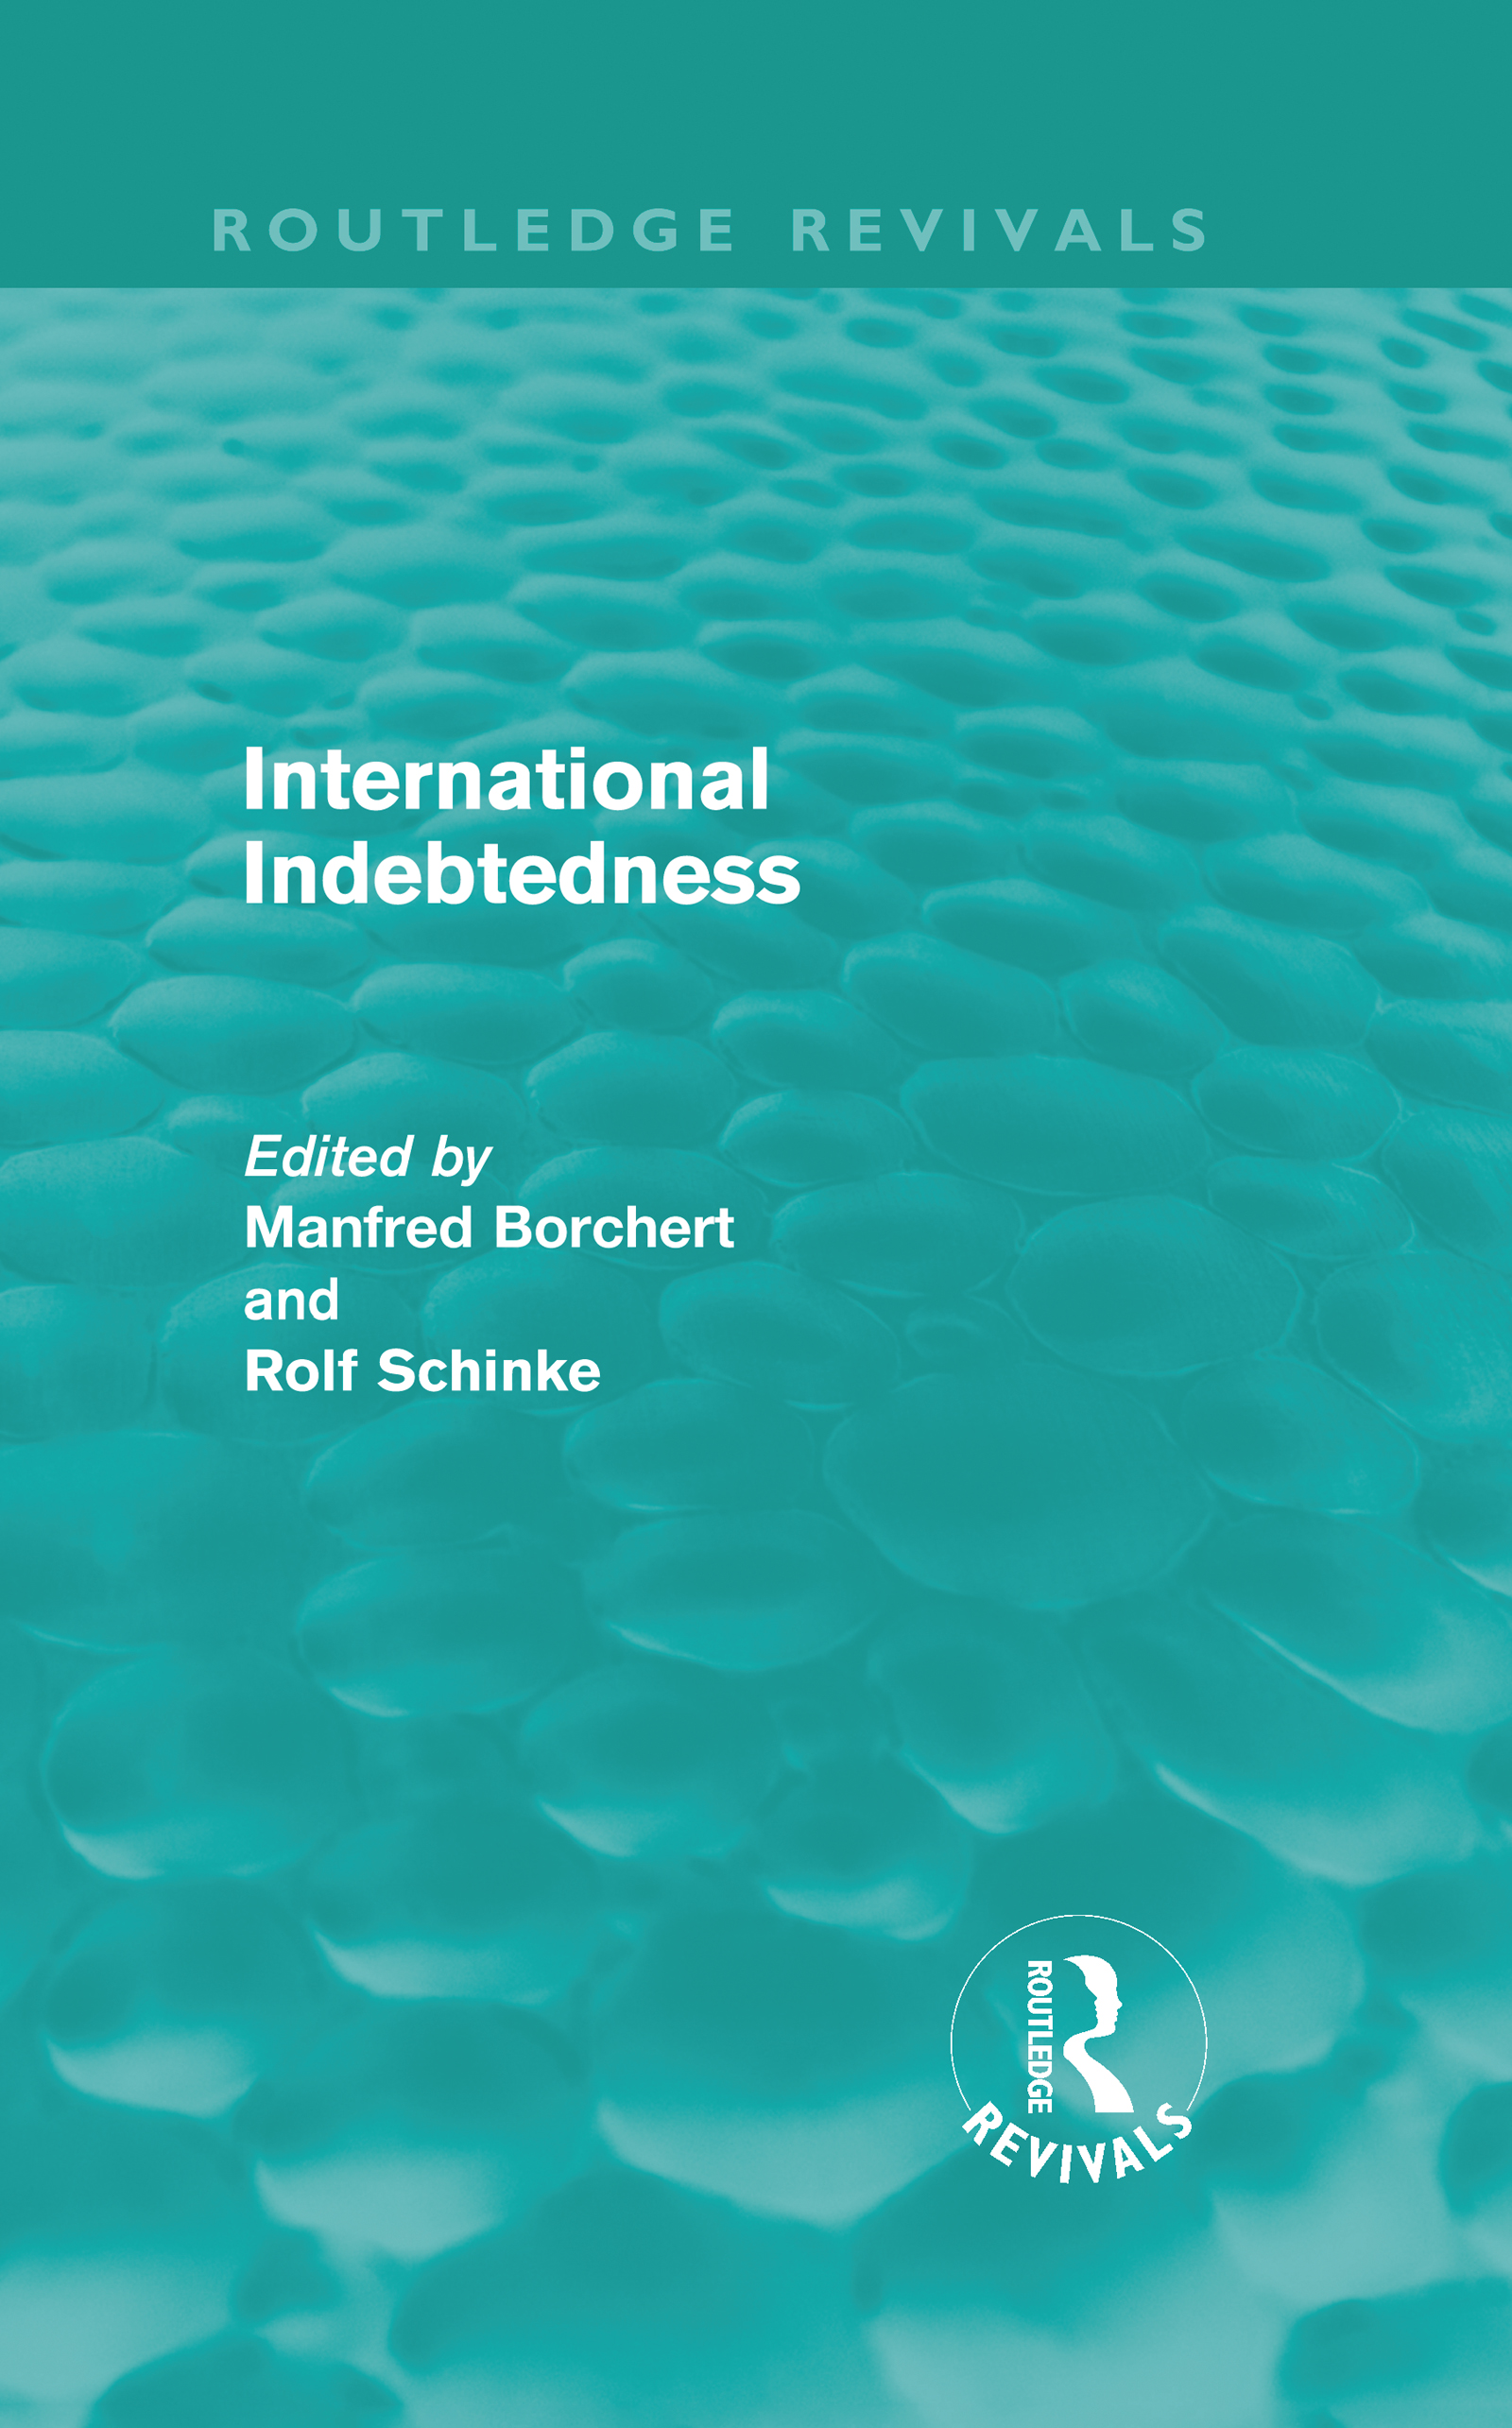 International Indebtedness